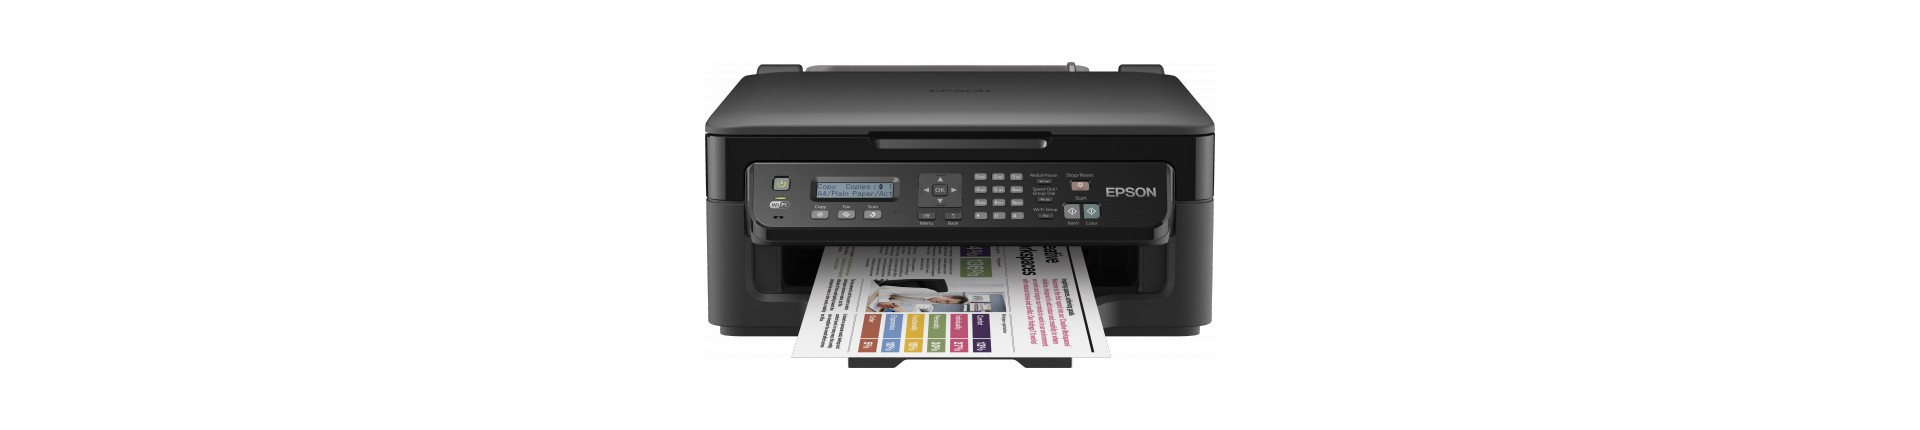 Epson Workforce WF-2510 WF